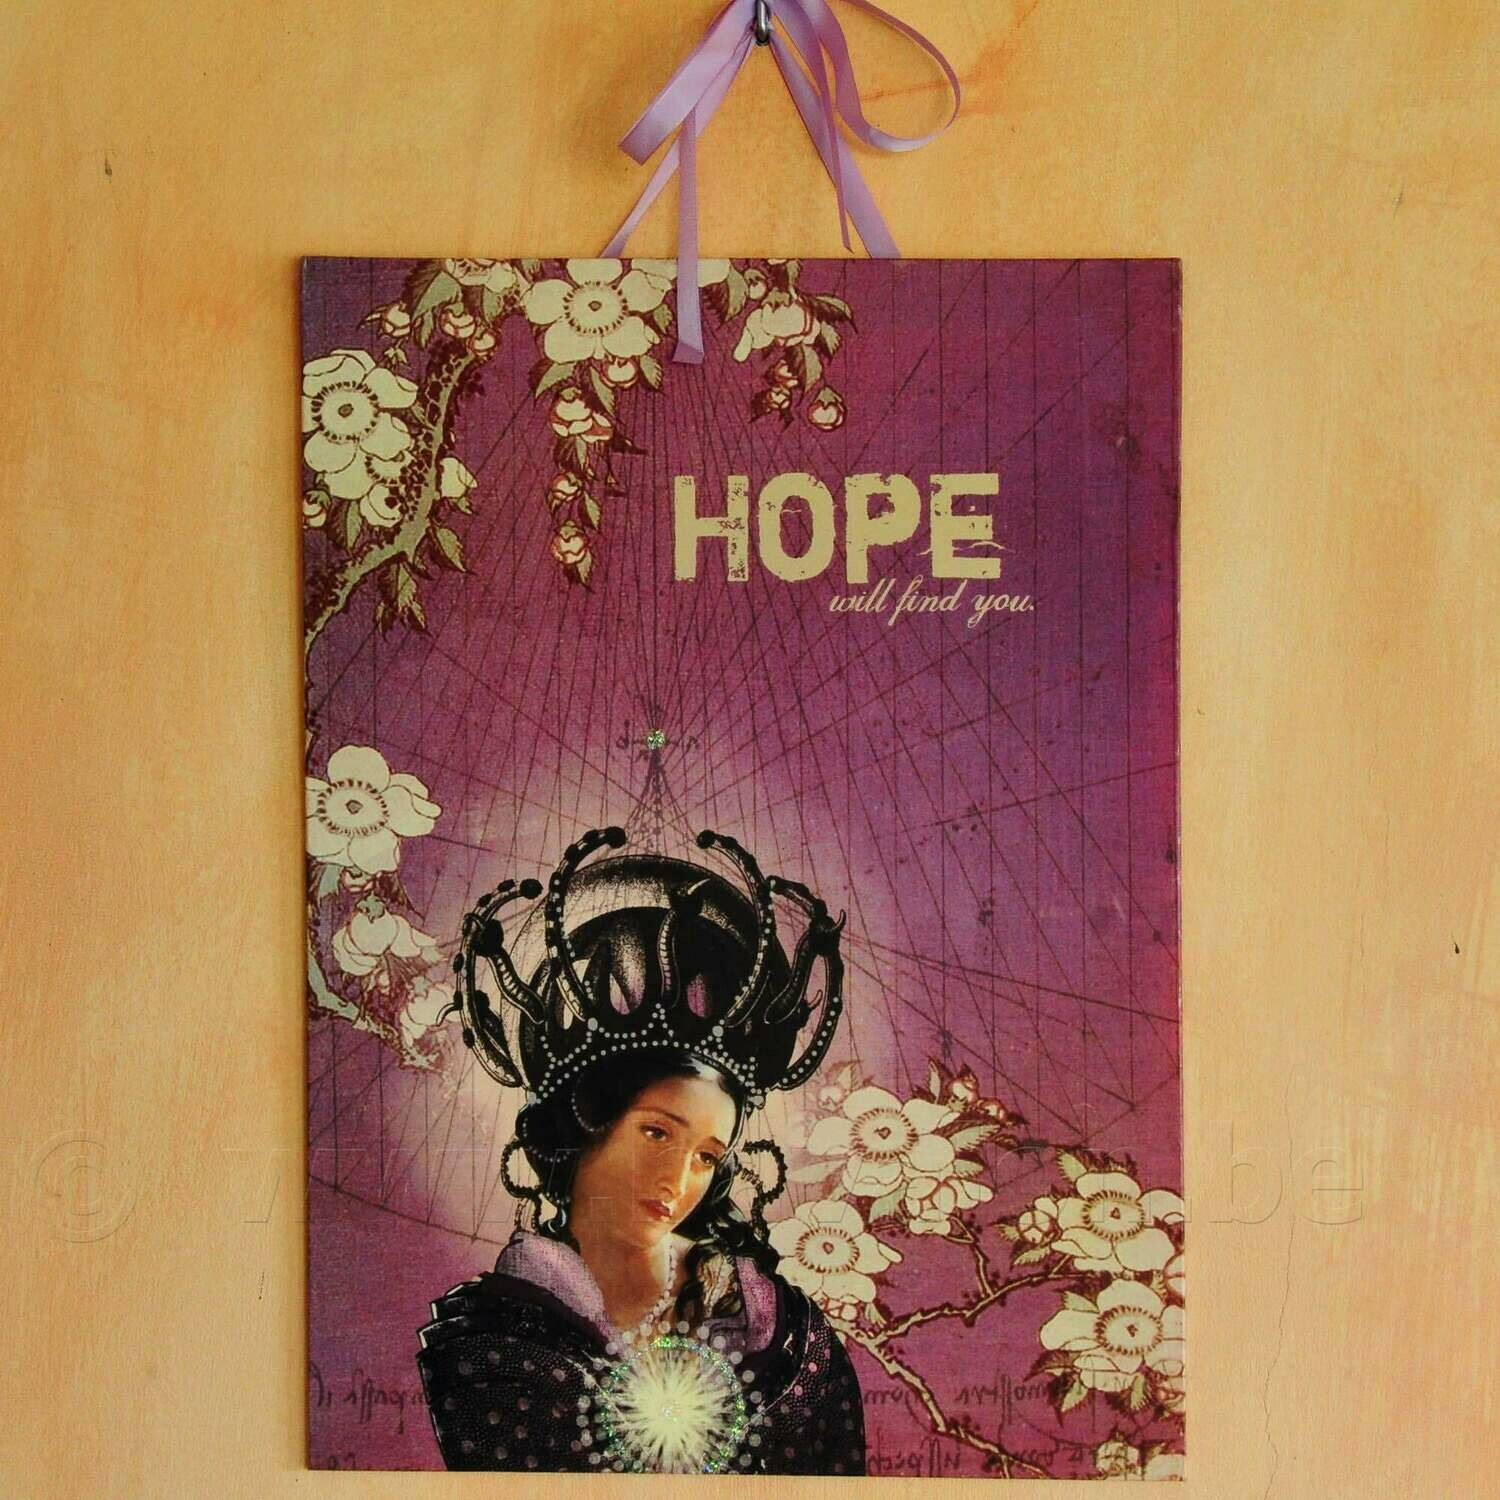 Grote illustratie 'Hope will find you'